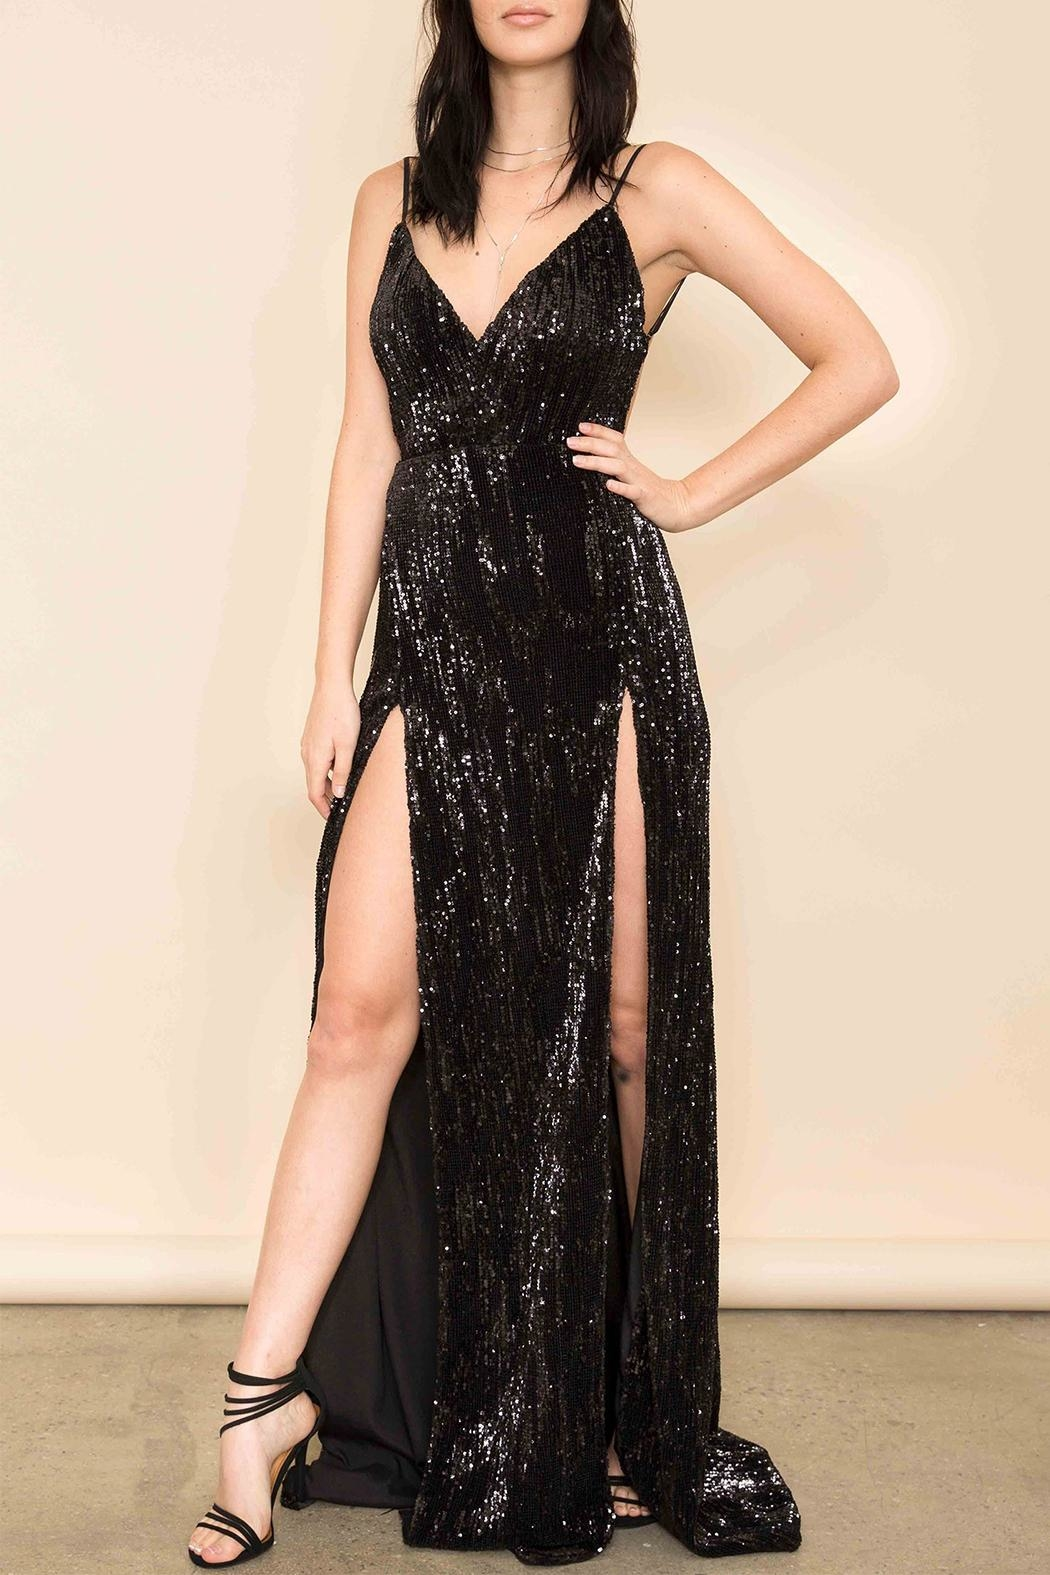 Latiste Black Sequin Gown - Main Image